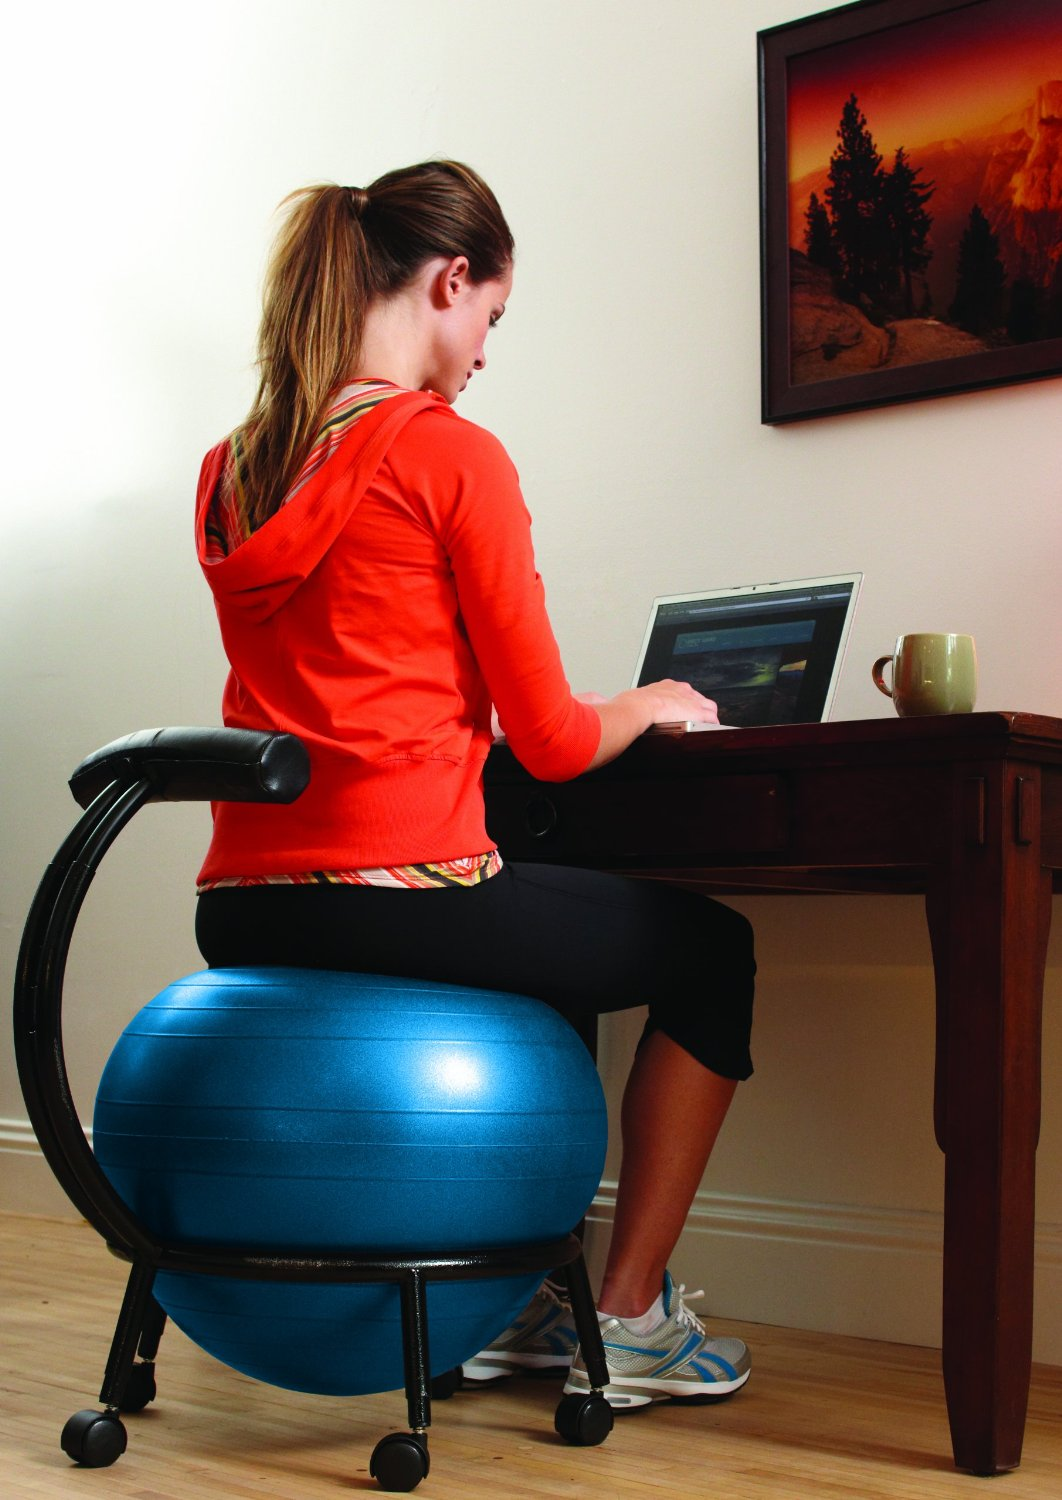 Yoga Ball Chair Excercise Ball Desk Chair Oh My That 39s Awesome